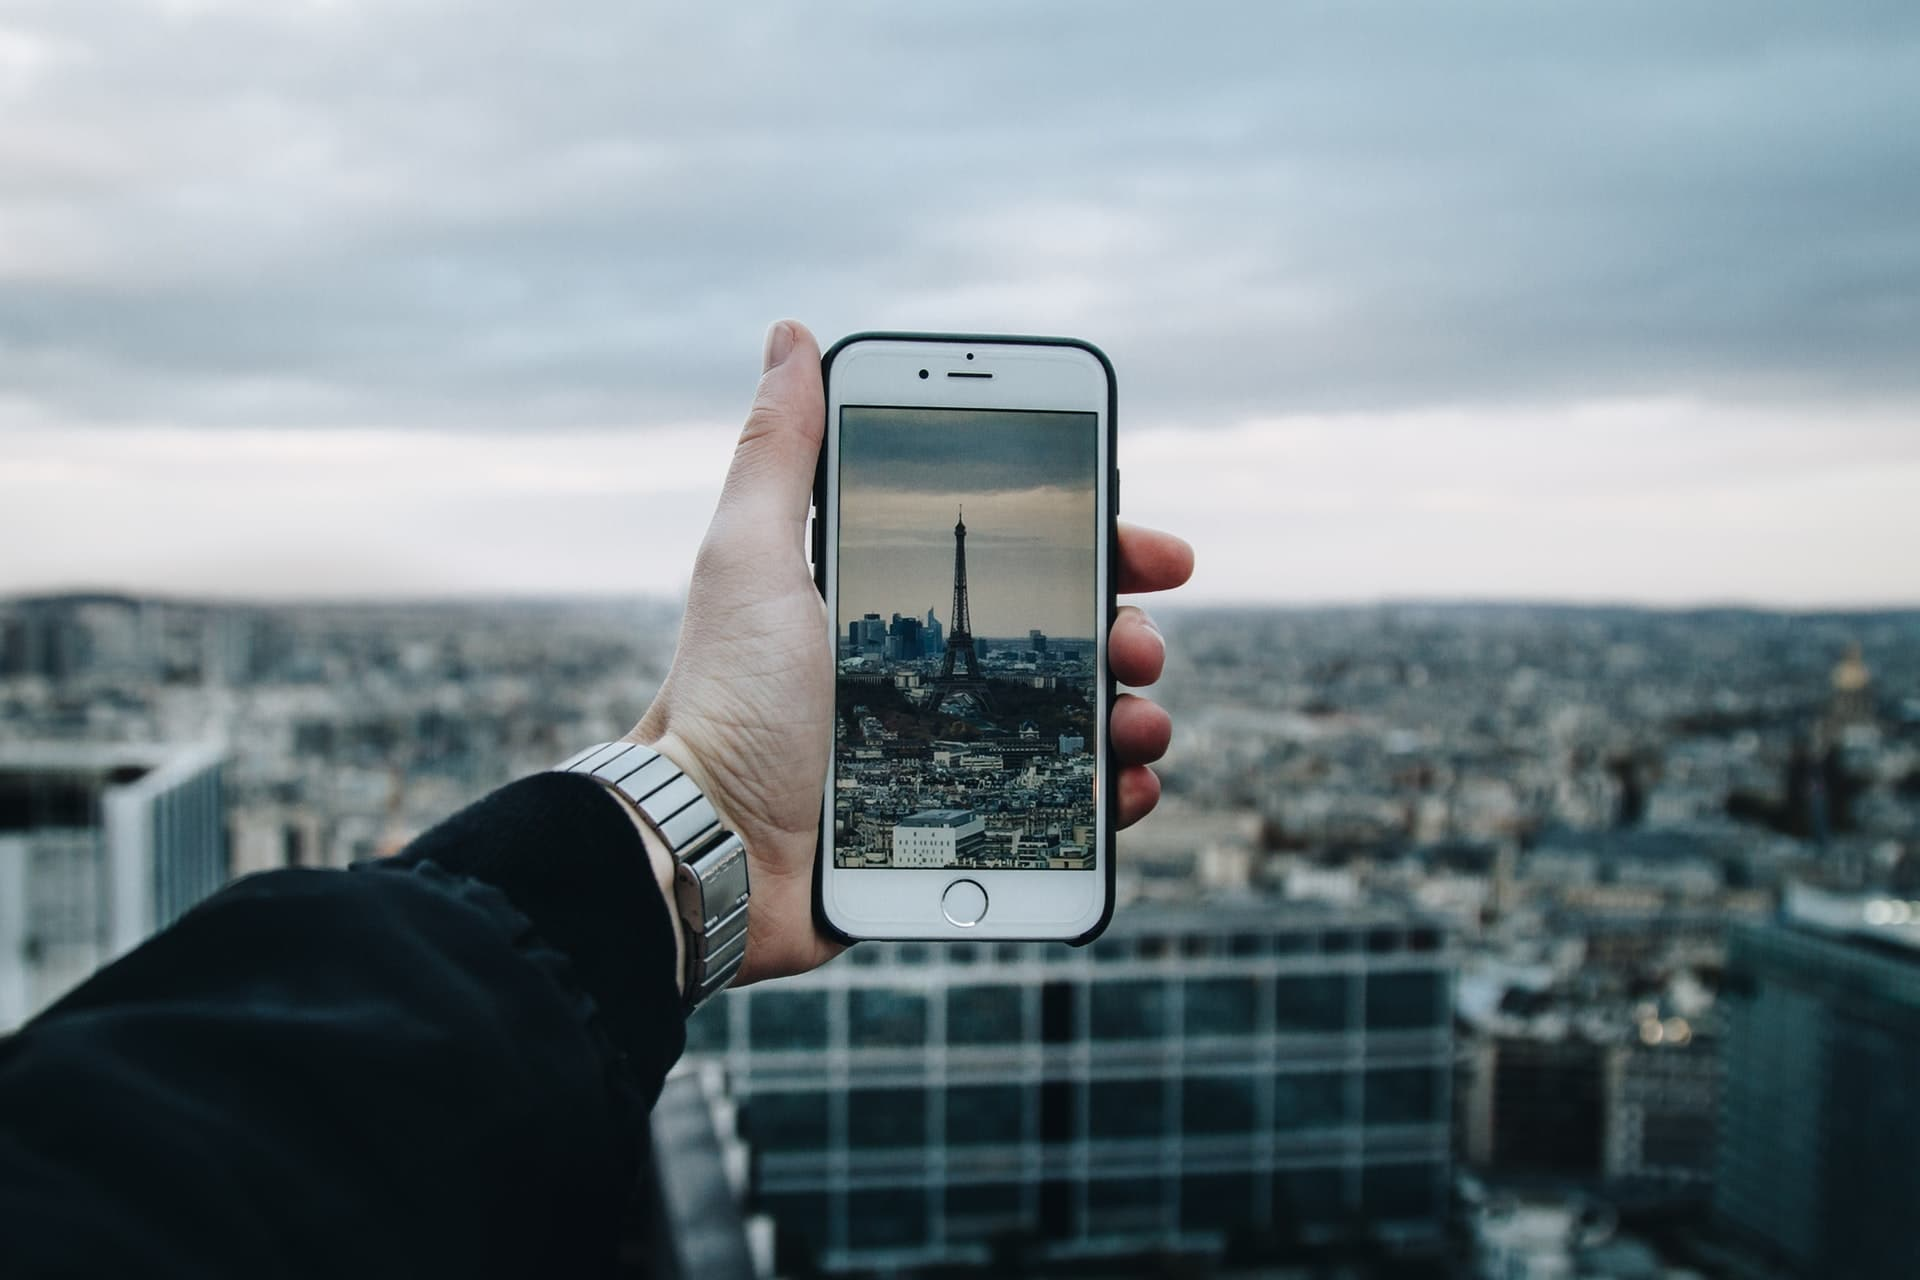 Iphone being held up over the city of Paris.